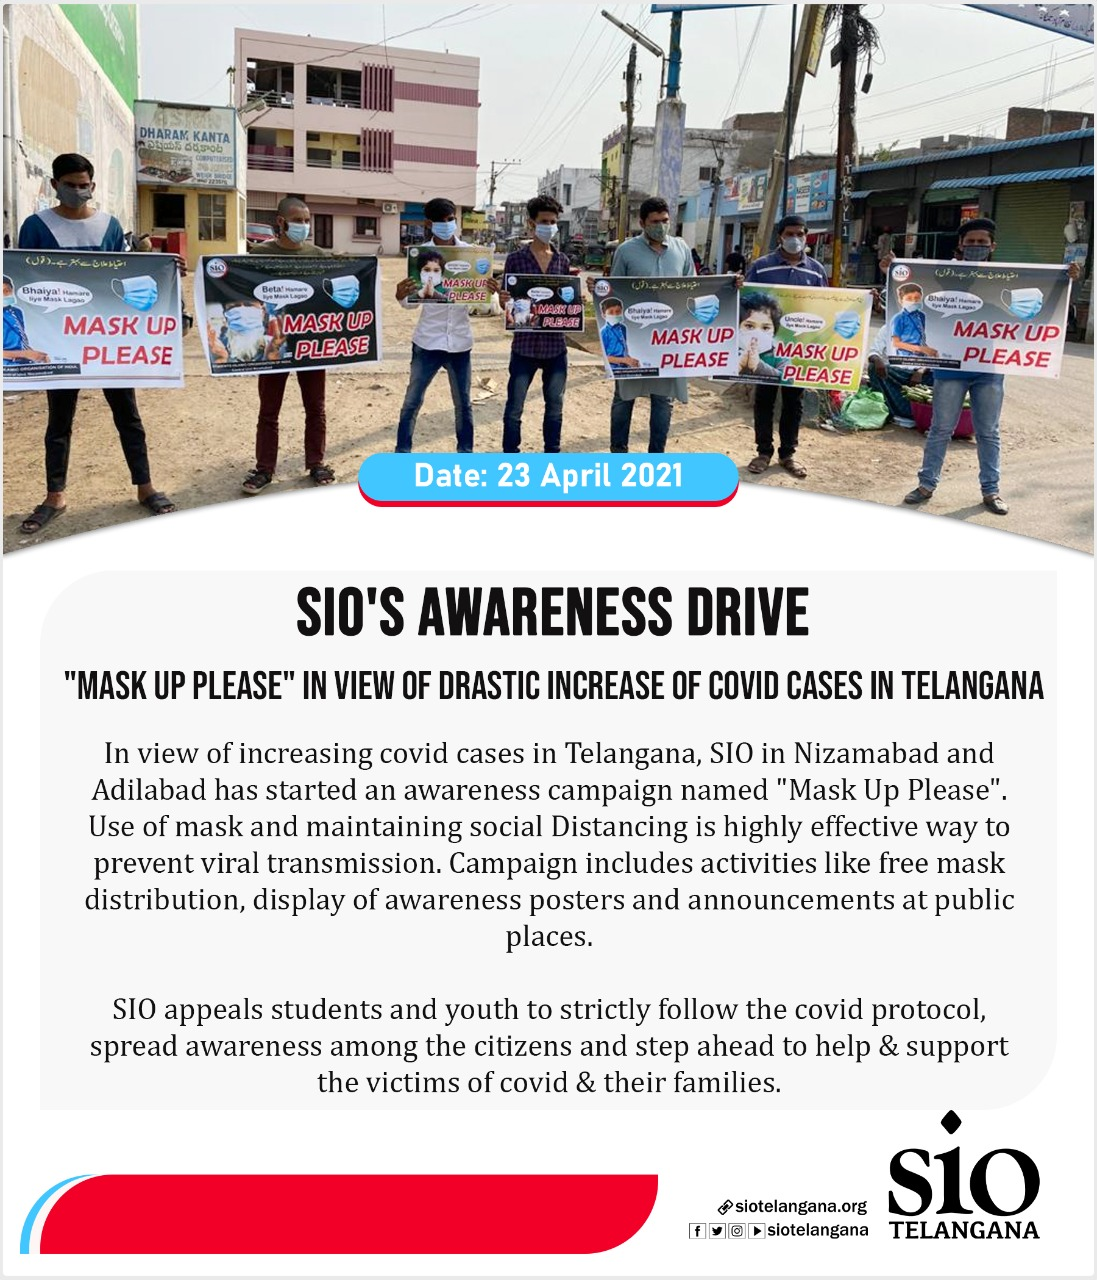 """SIO's awareness drive """"MASK UP PLEASE"""" in view of drastic increase of Covid cases in TS"""